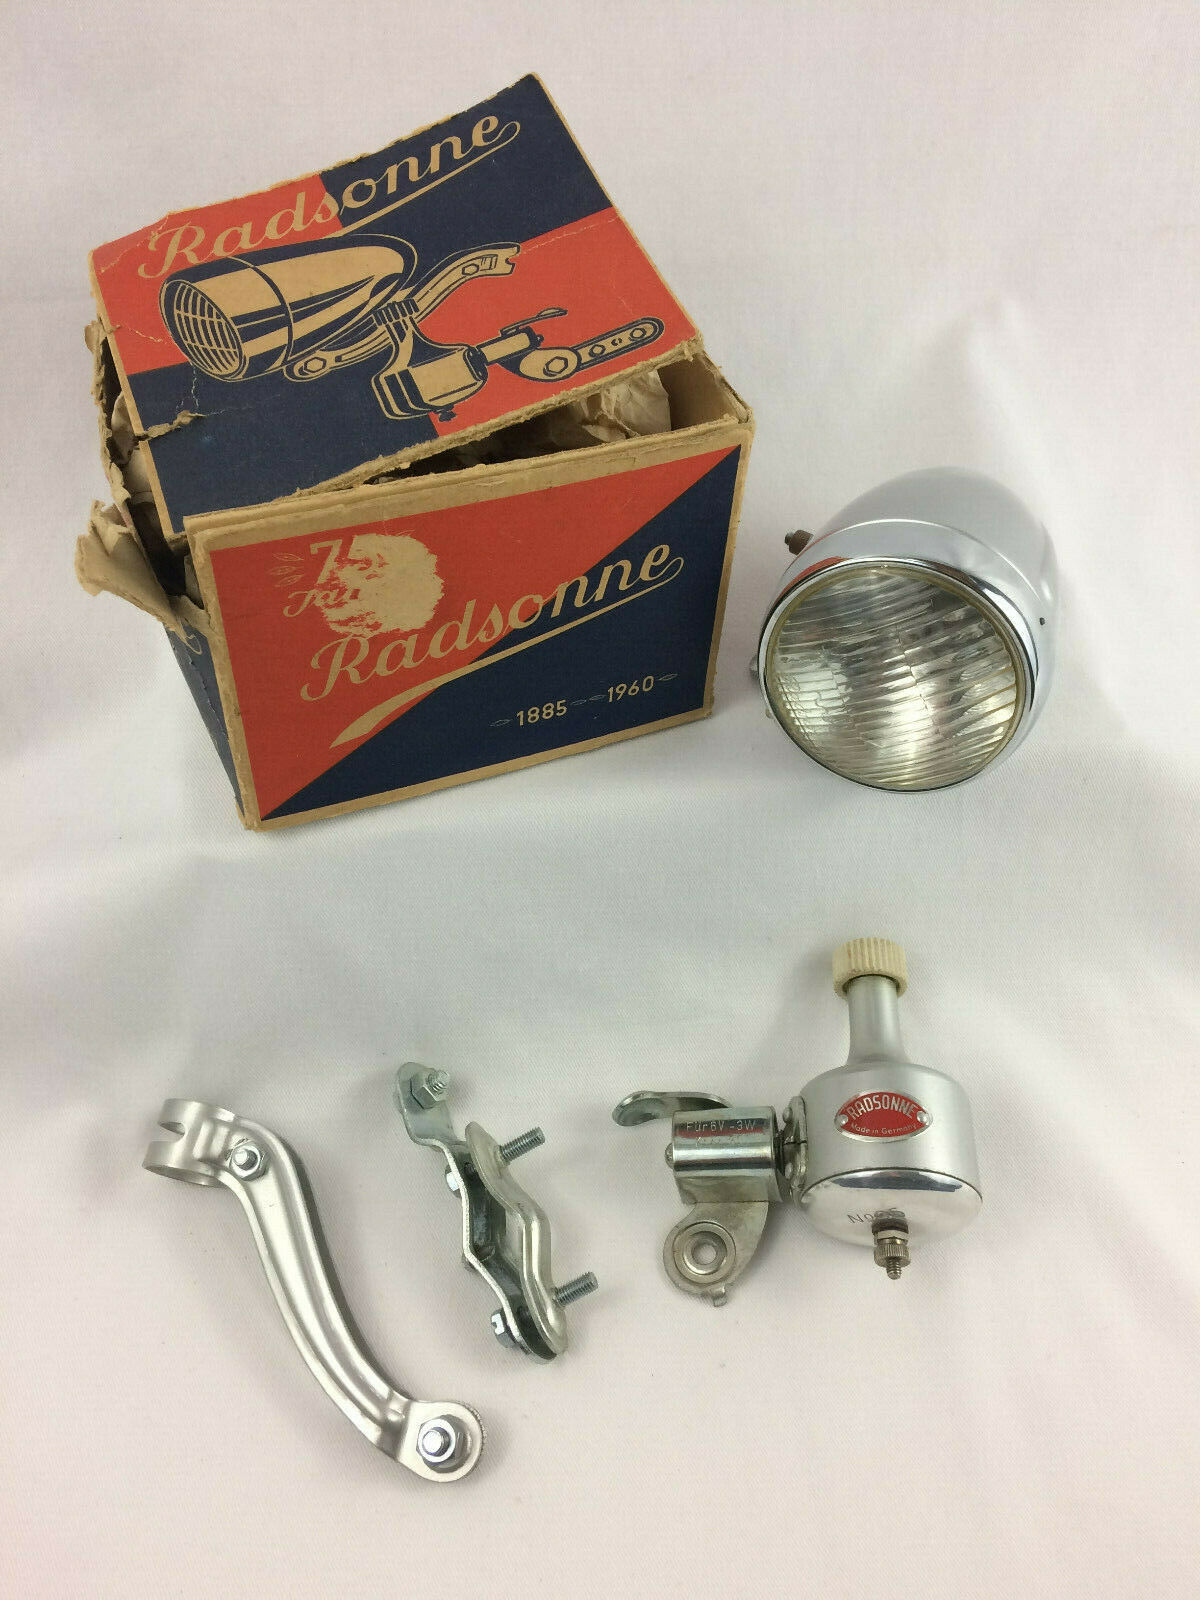 Vintage Radsonne Bike  Generator Light Kit, Complete w  All Parts In Original Box  fast shipping to you